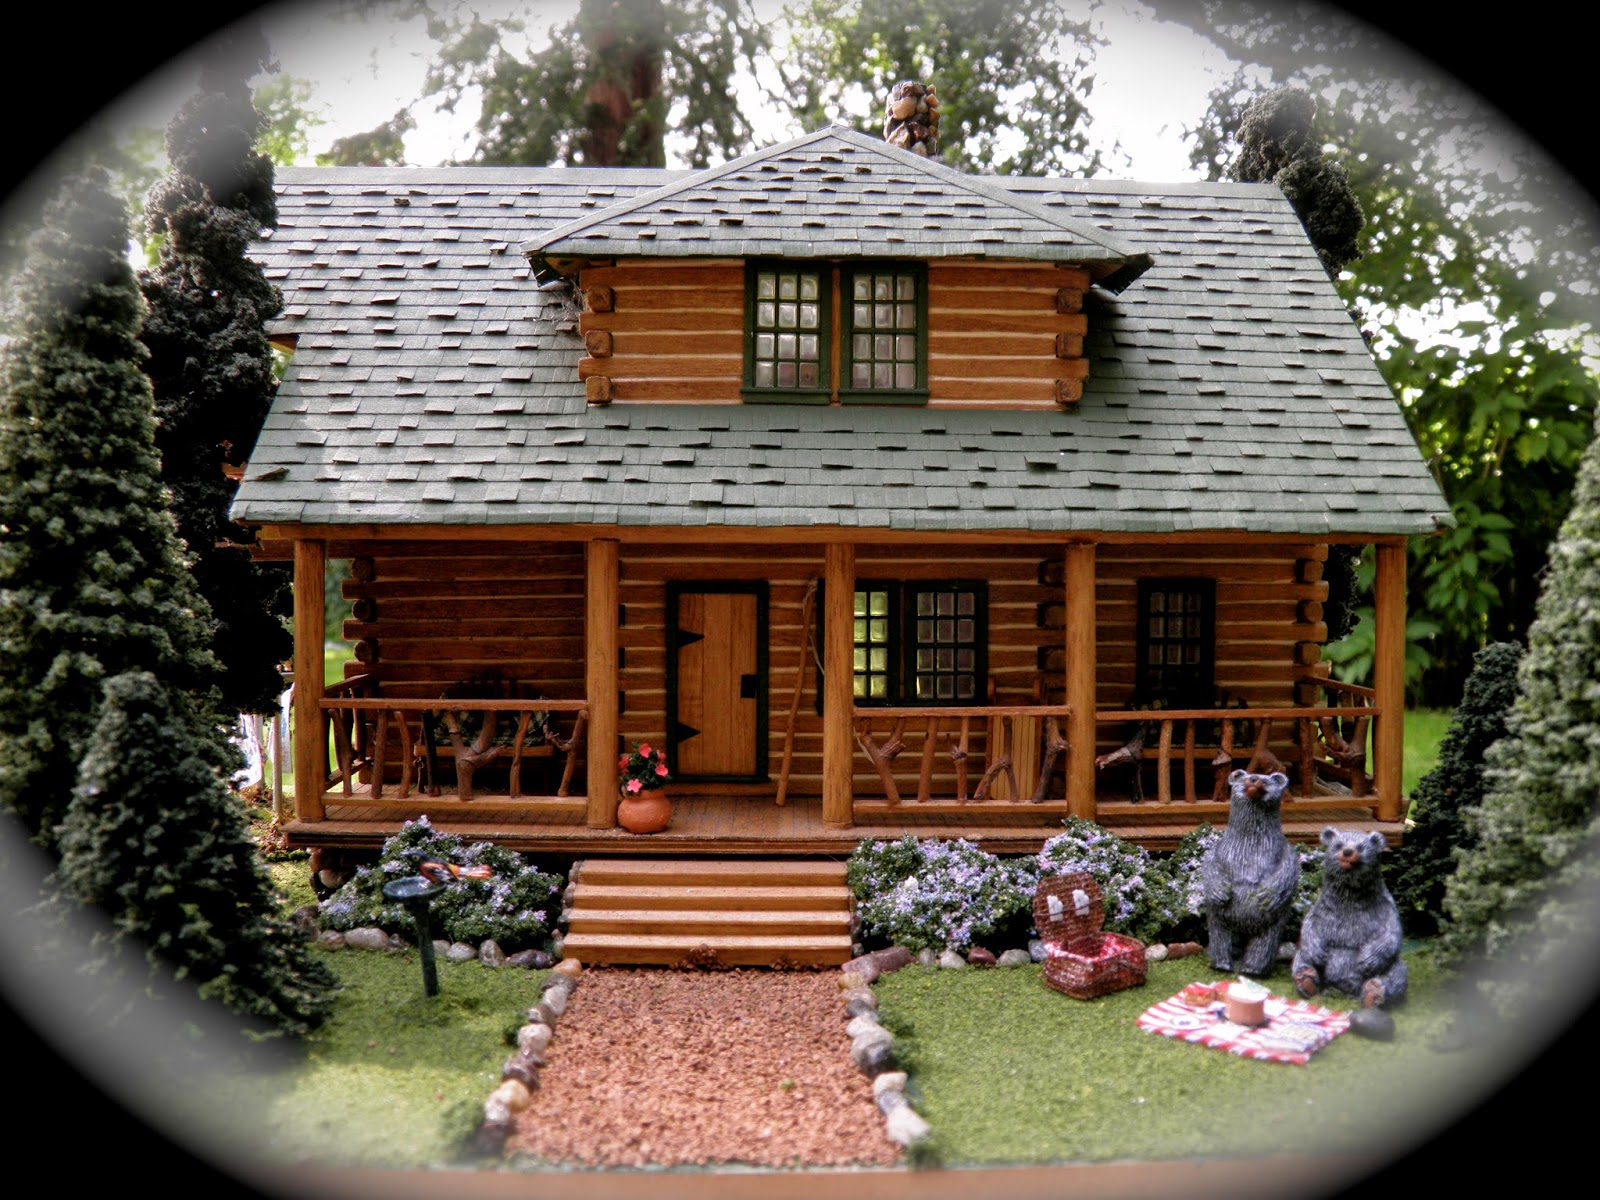 theweetinker: Log Cabin in Miniature